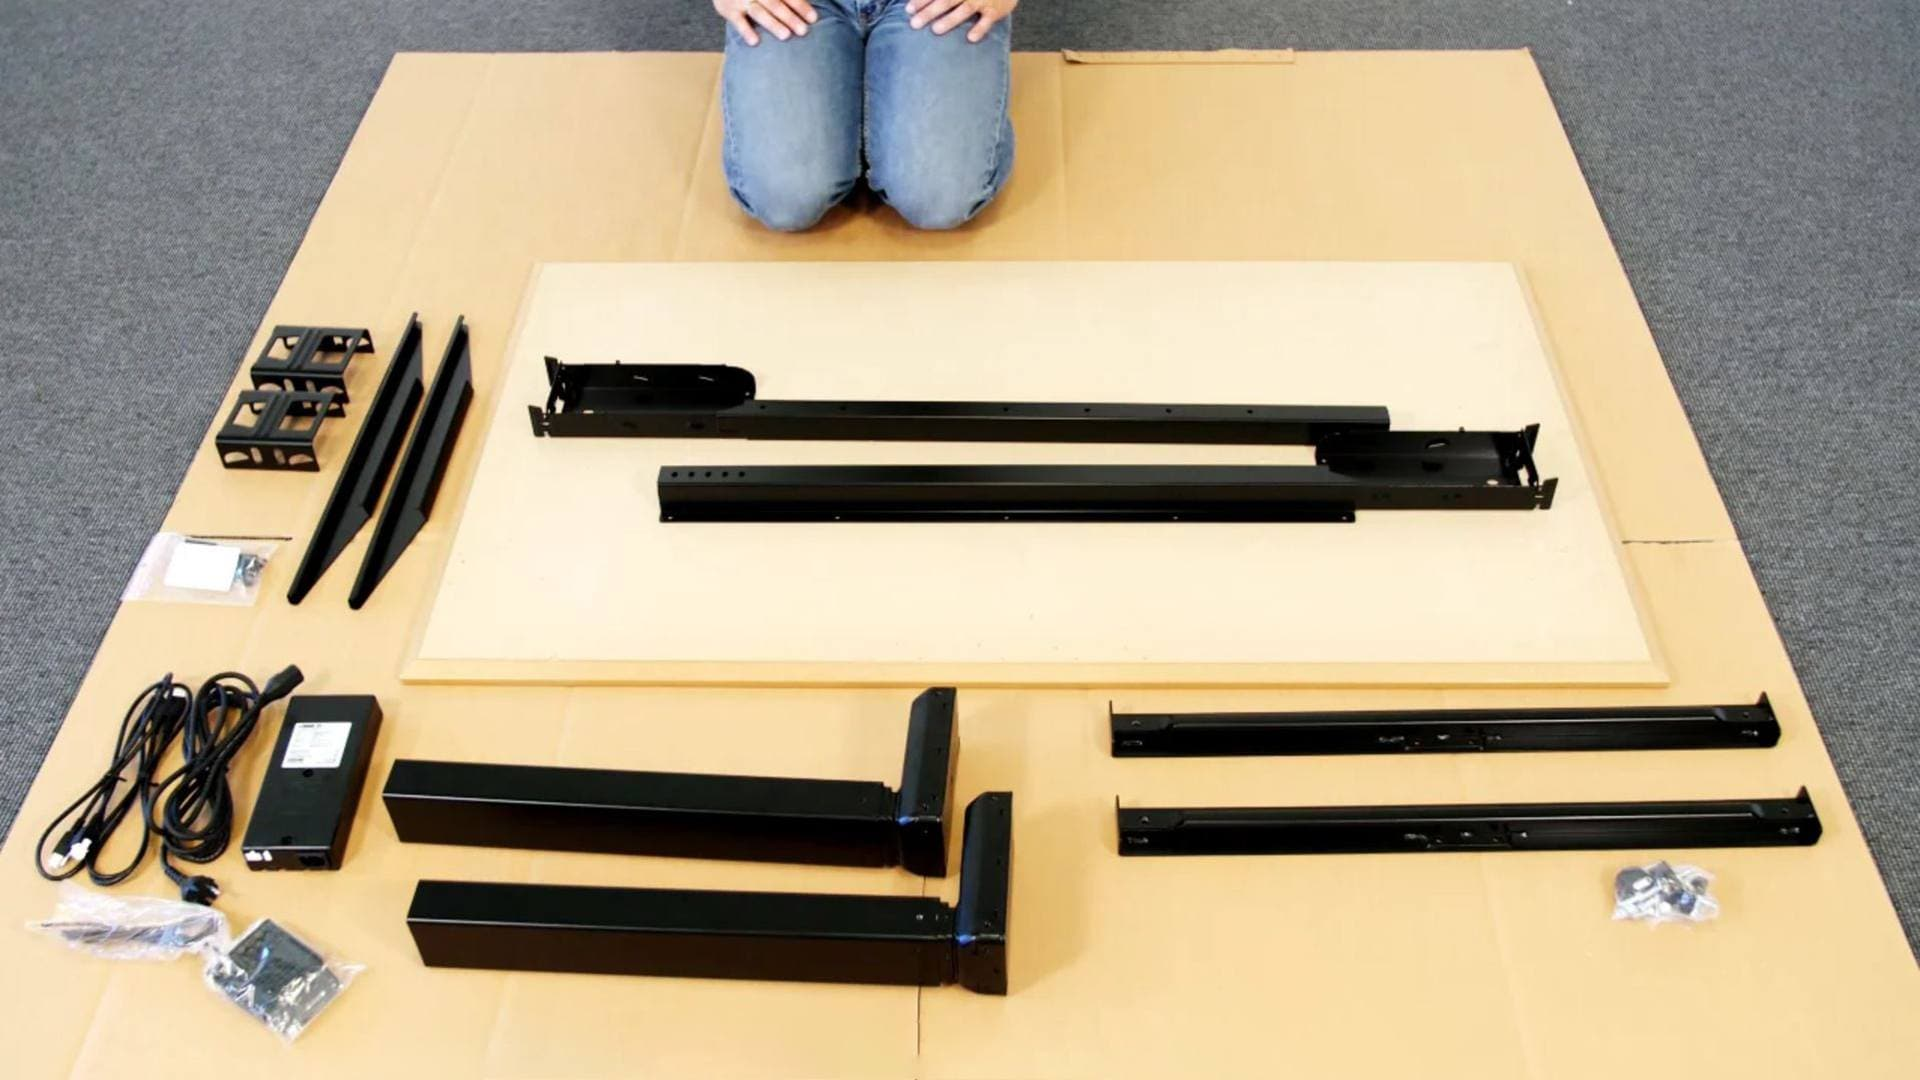 Desk Frame 1: How to assemble an office desk